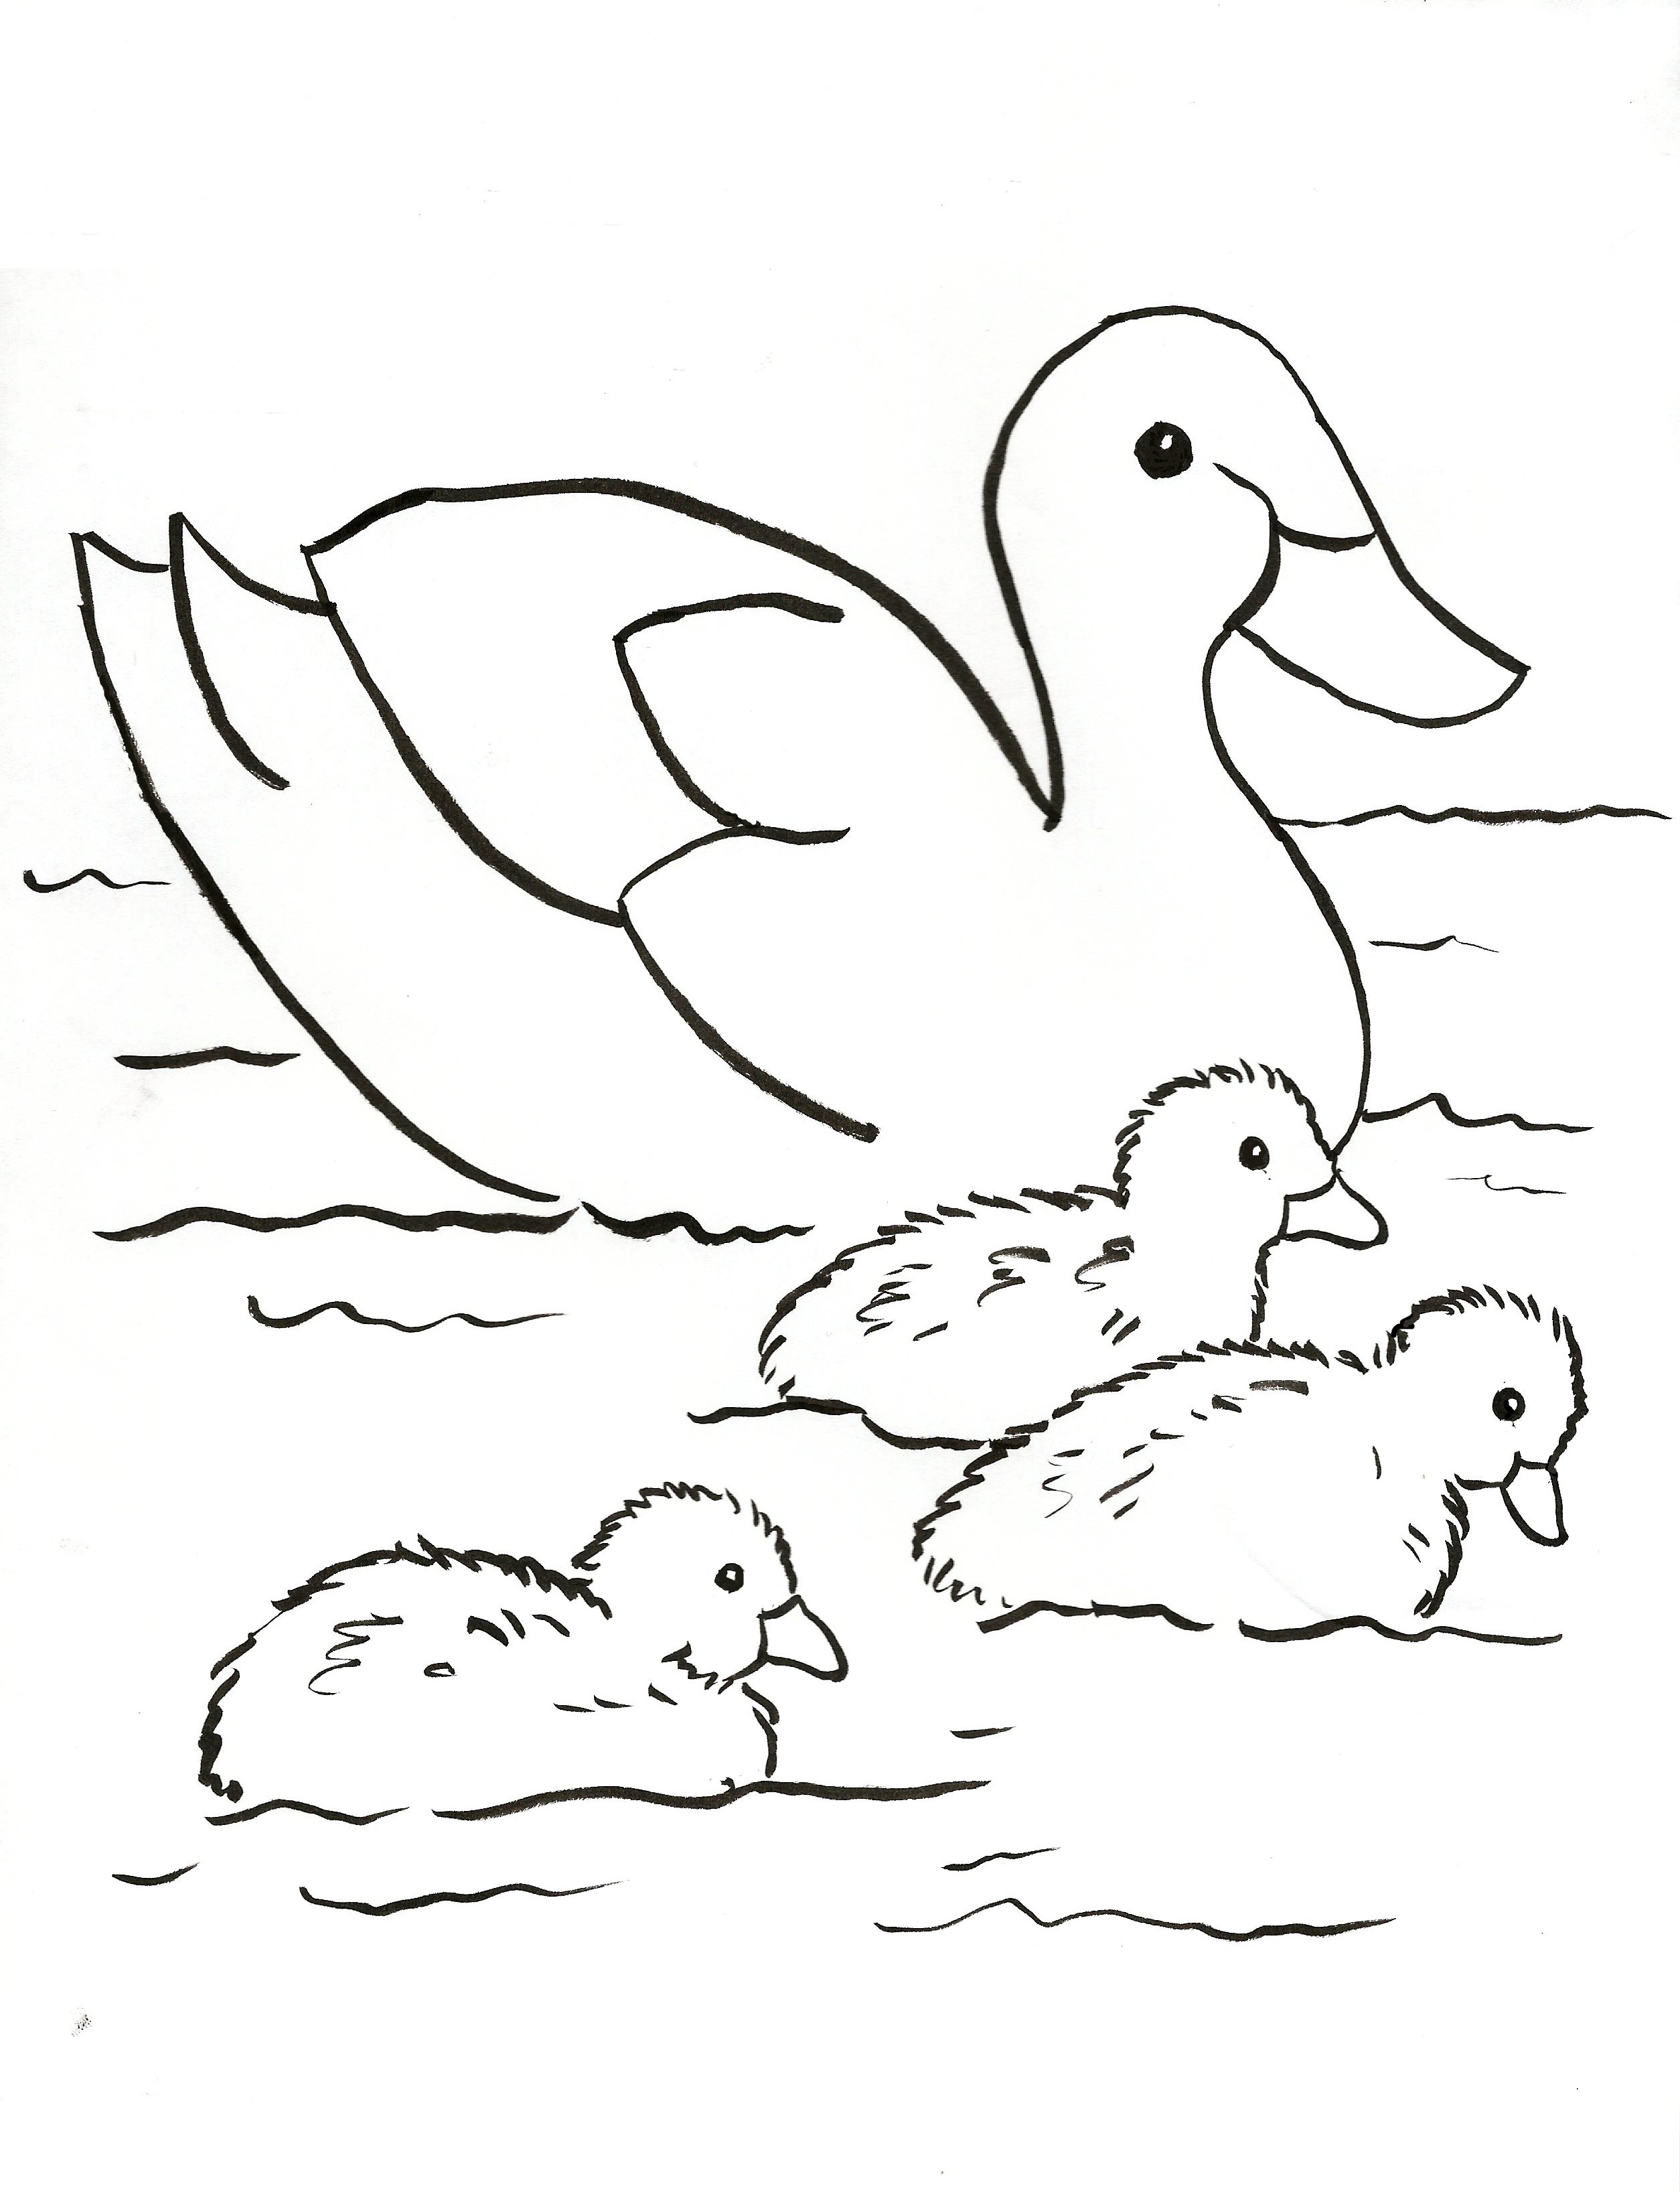 duck family coloring page samantha bell